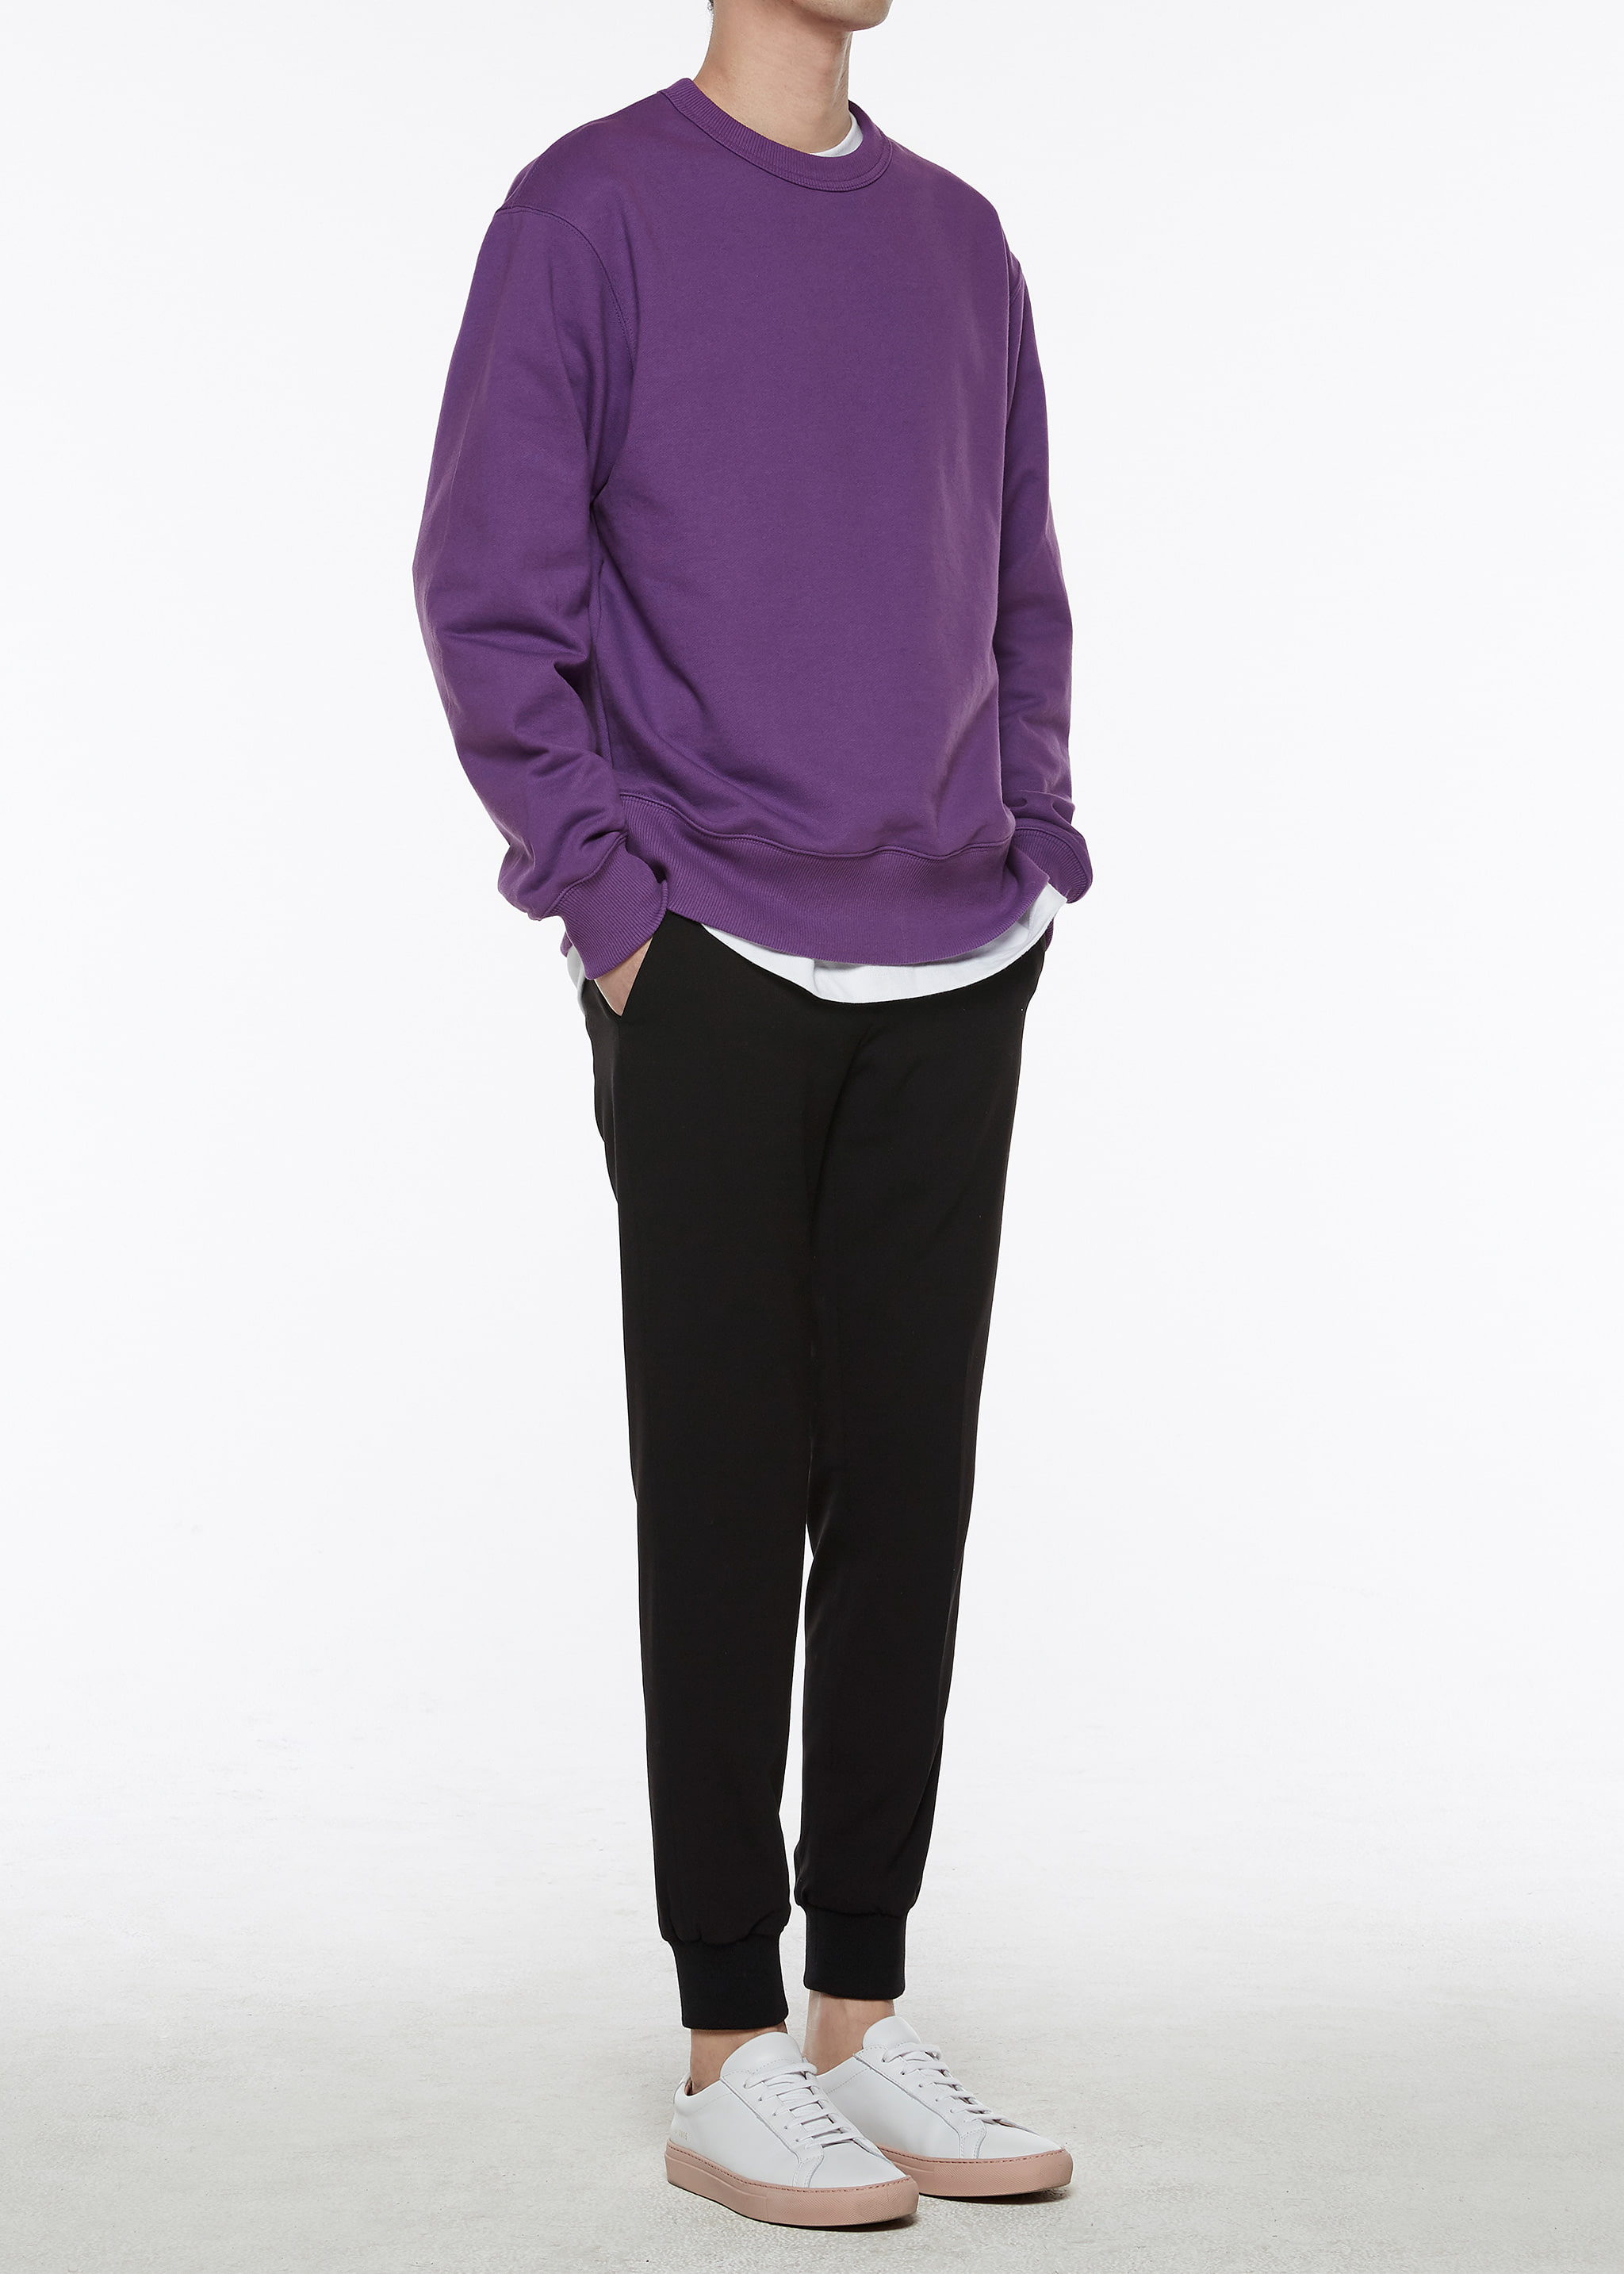 Errday Sweatshirt (Purple)